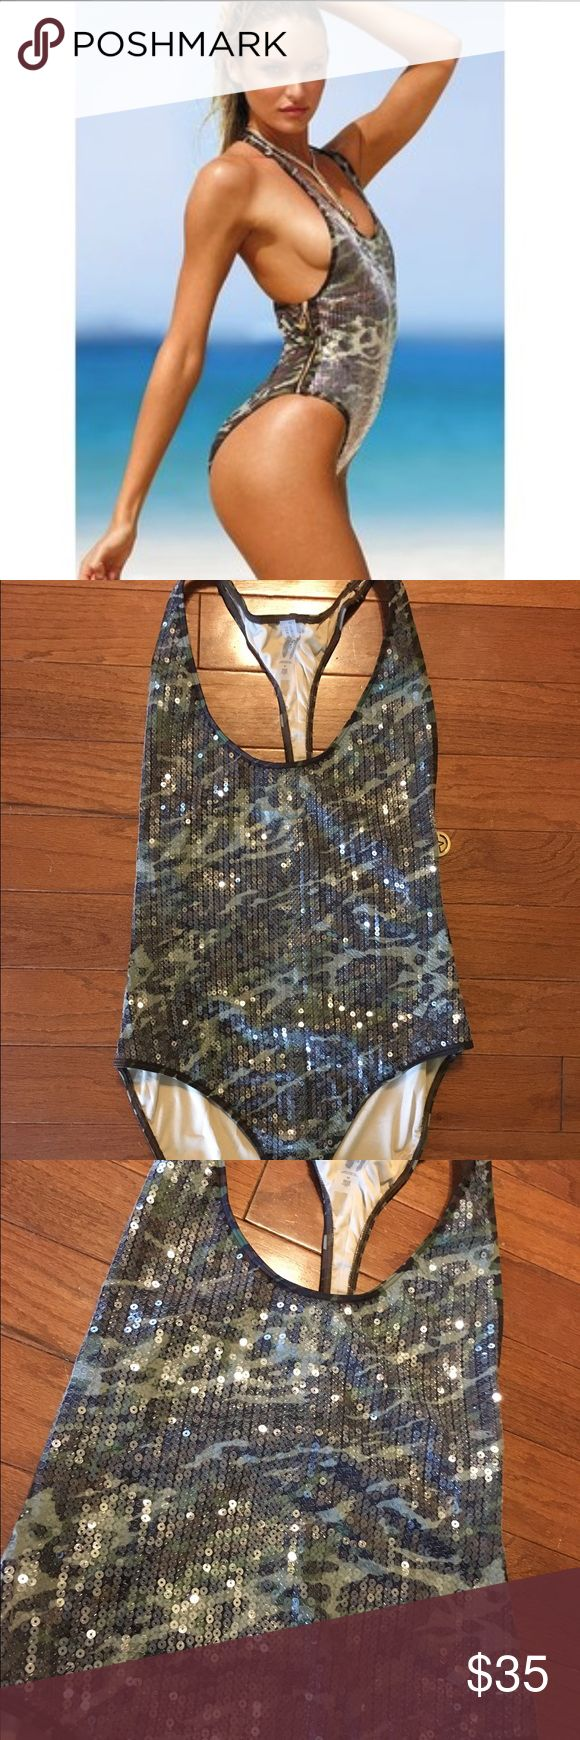 Victoria's Secret One Piece Camo Sequins Swimsuit Victoria's Secret One Piece Camo Sequins Swimsuit in excellent like-new condition. No missing Sequins. Double side zippers. Make an offer! Victoria's Secret Swim One Pieces